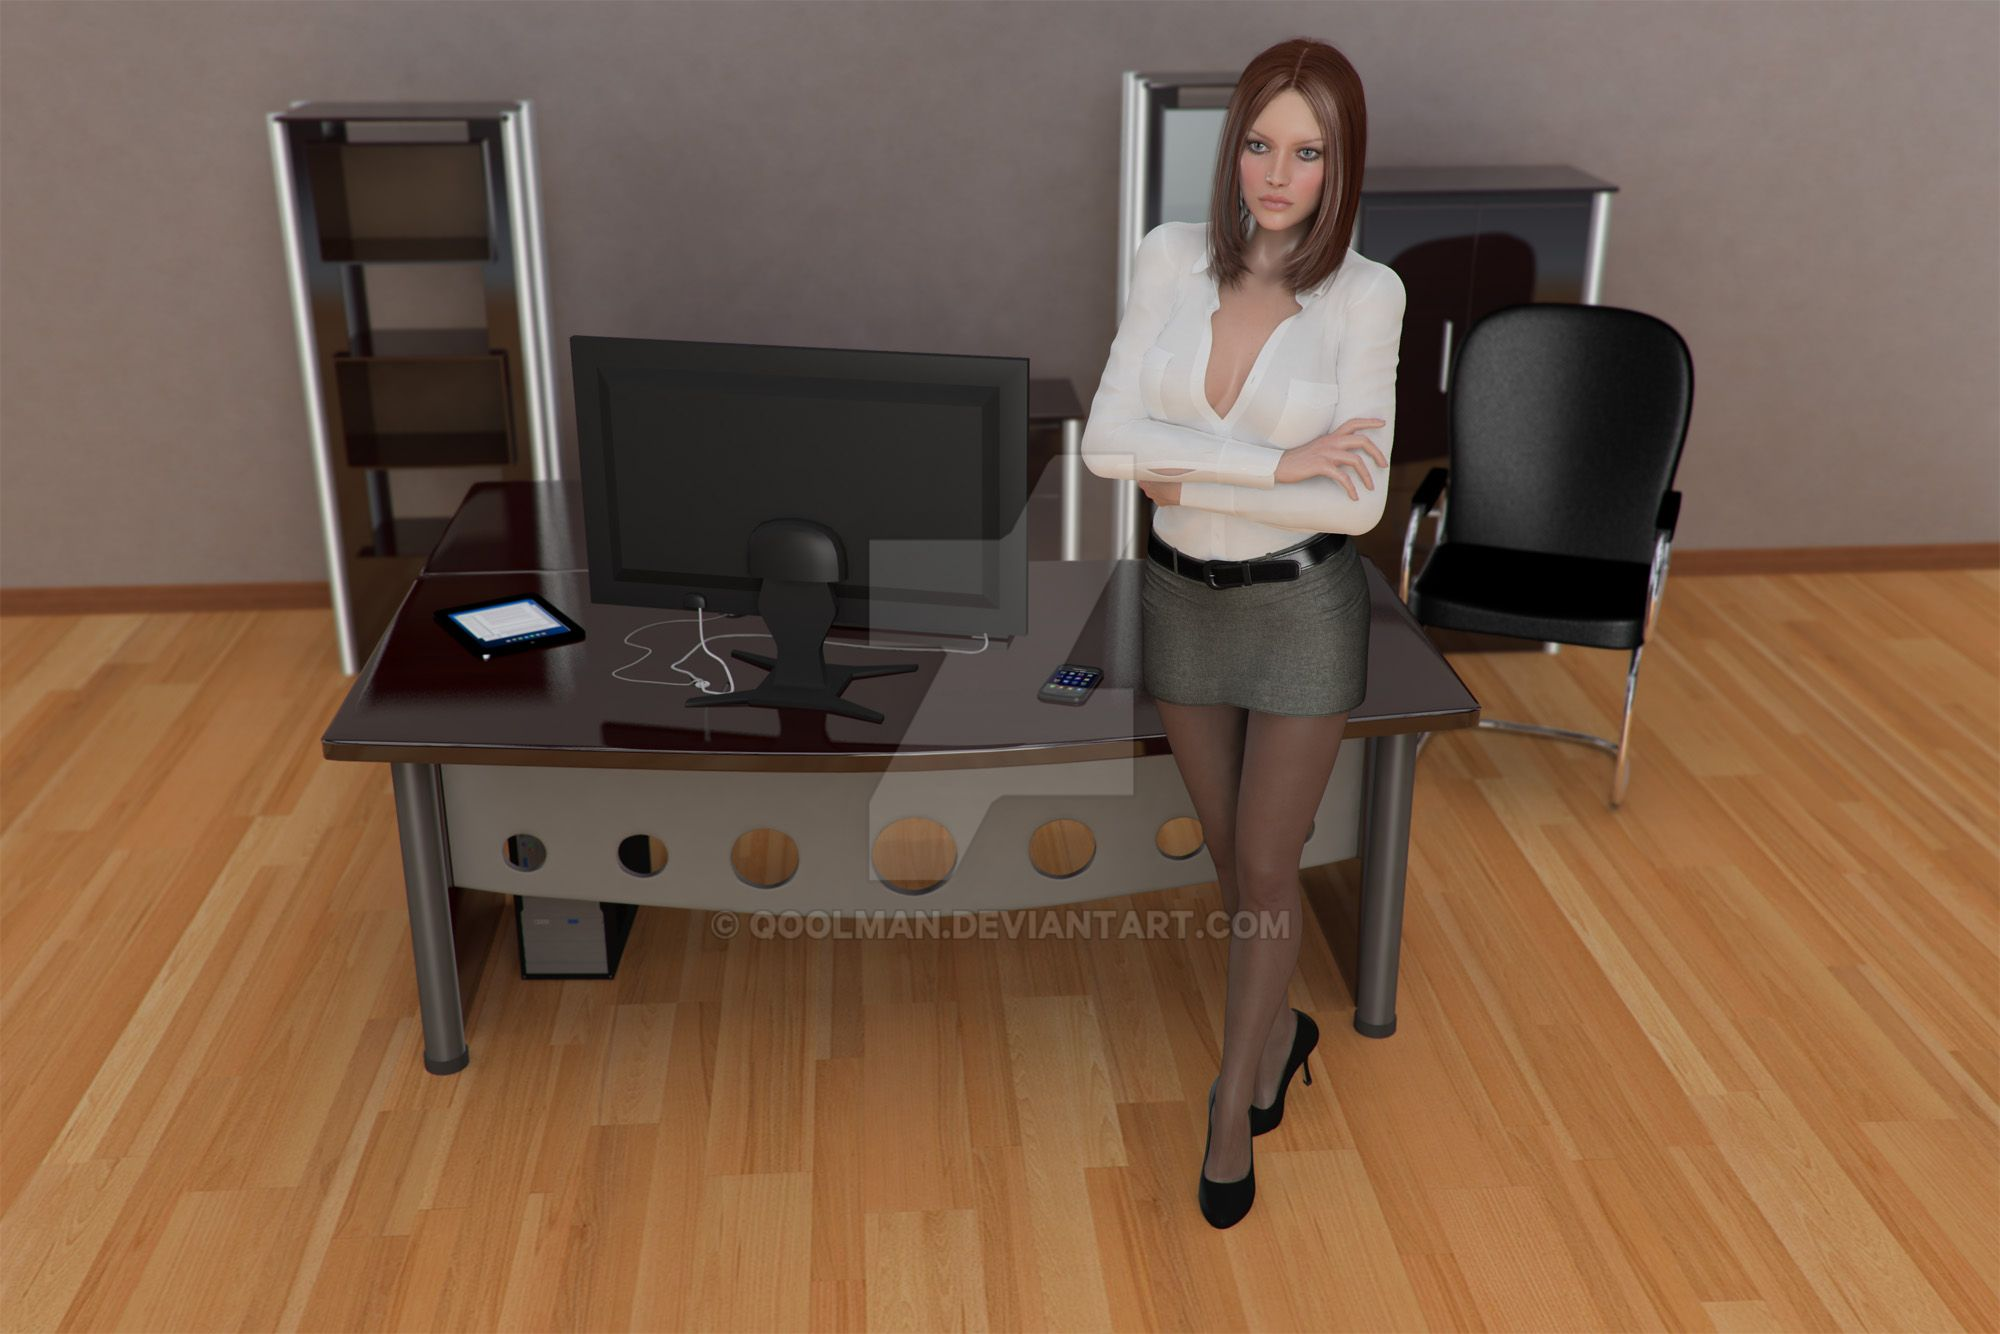 office models photos - coles.thecolossus.co